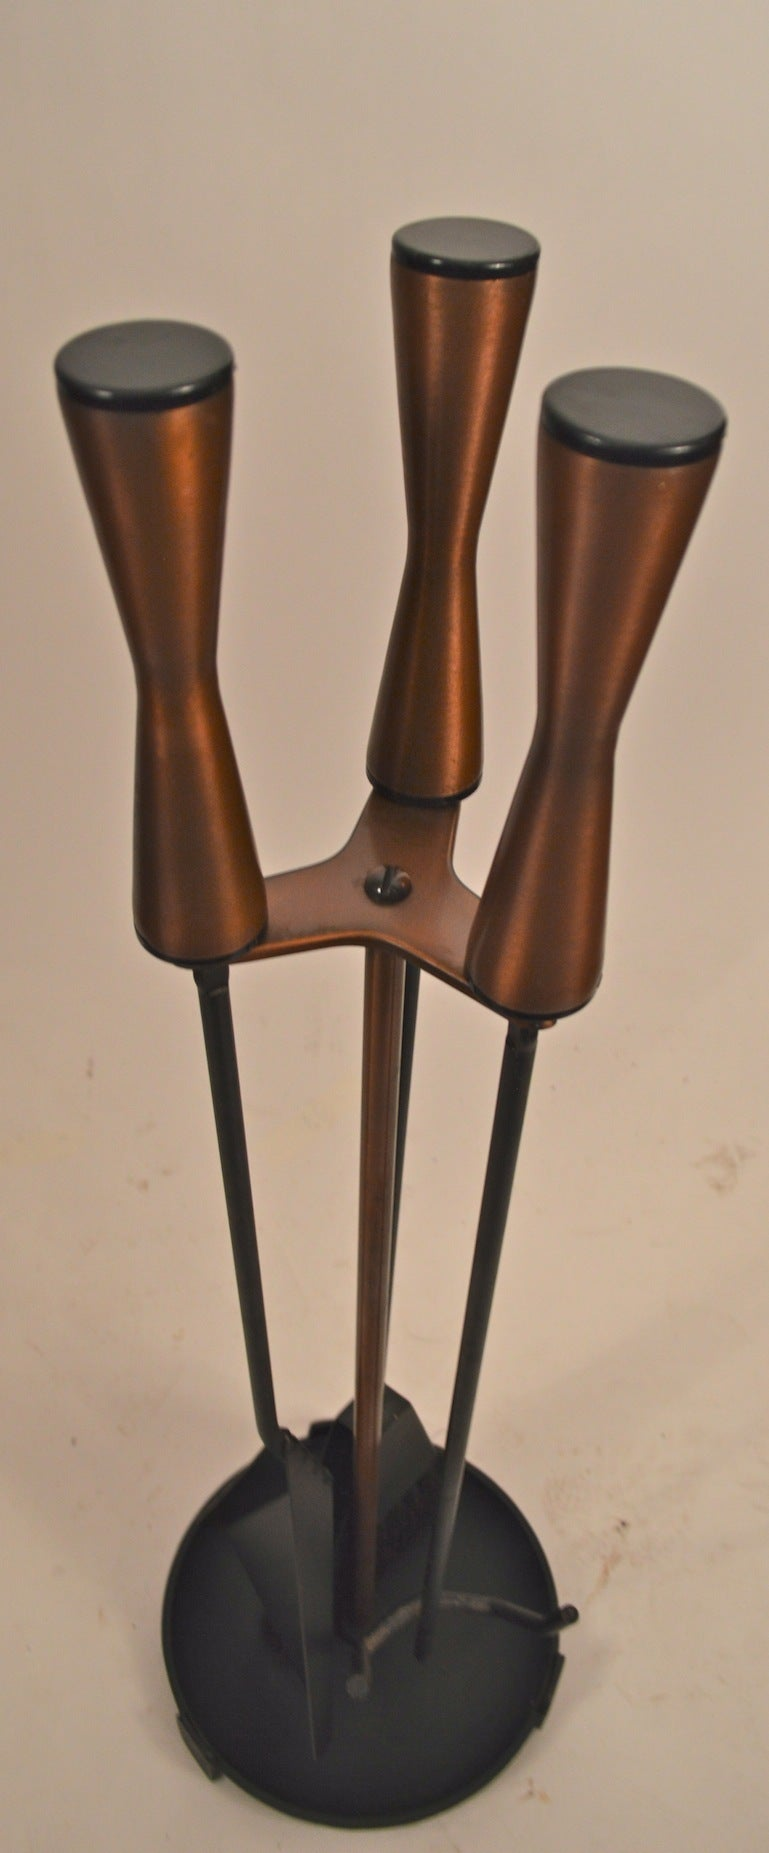 Danish Modern Fireplace Part - 50: Mid-Century Modern Fireplace Tool Set 3